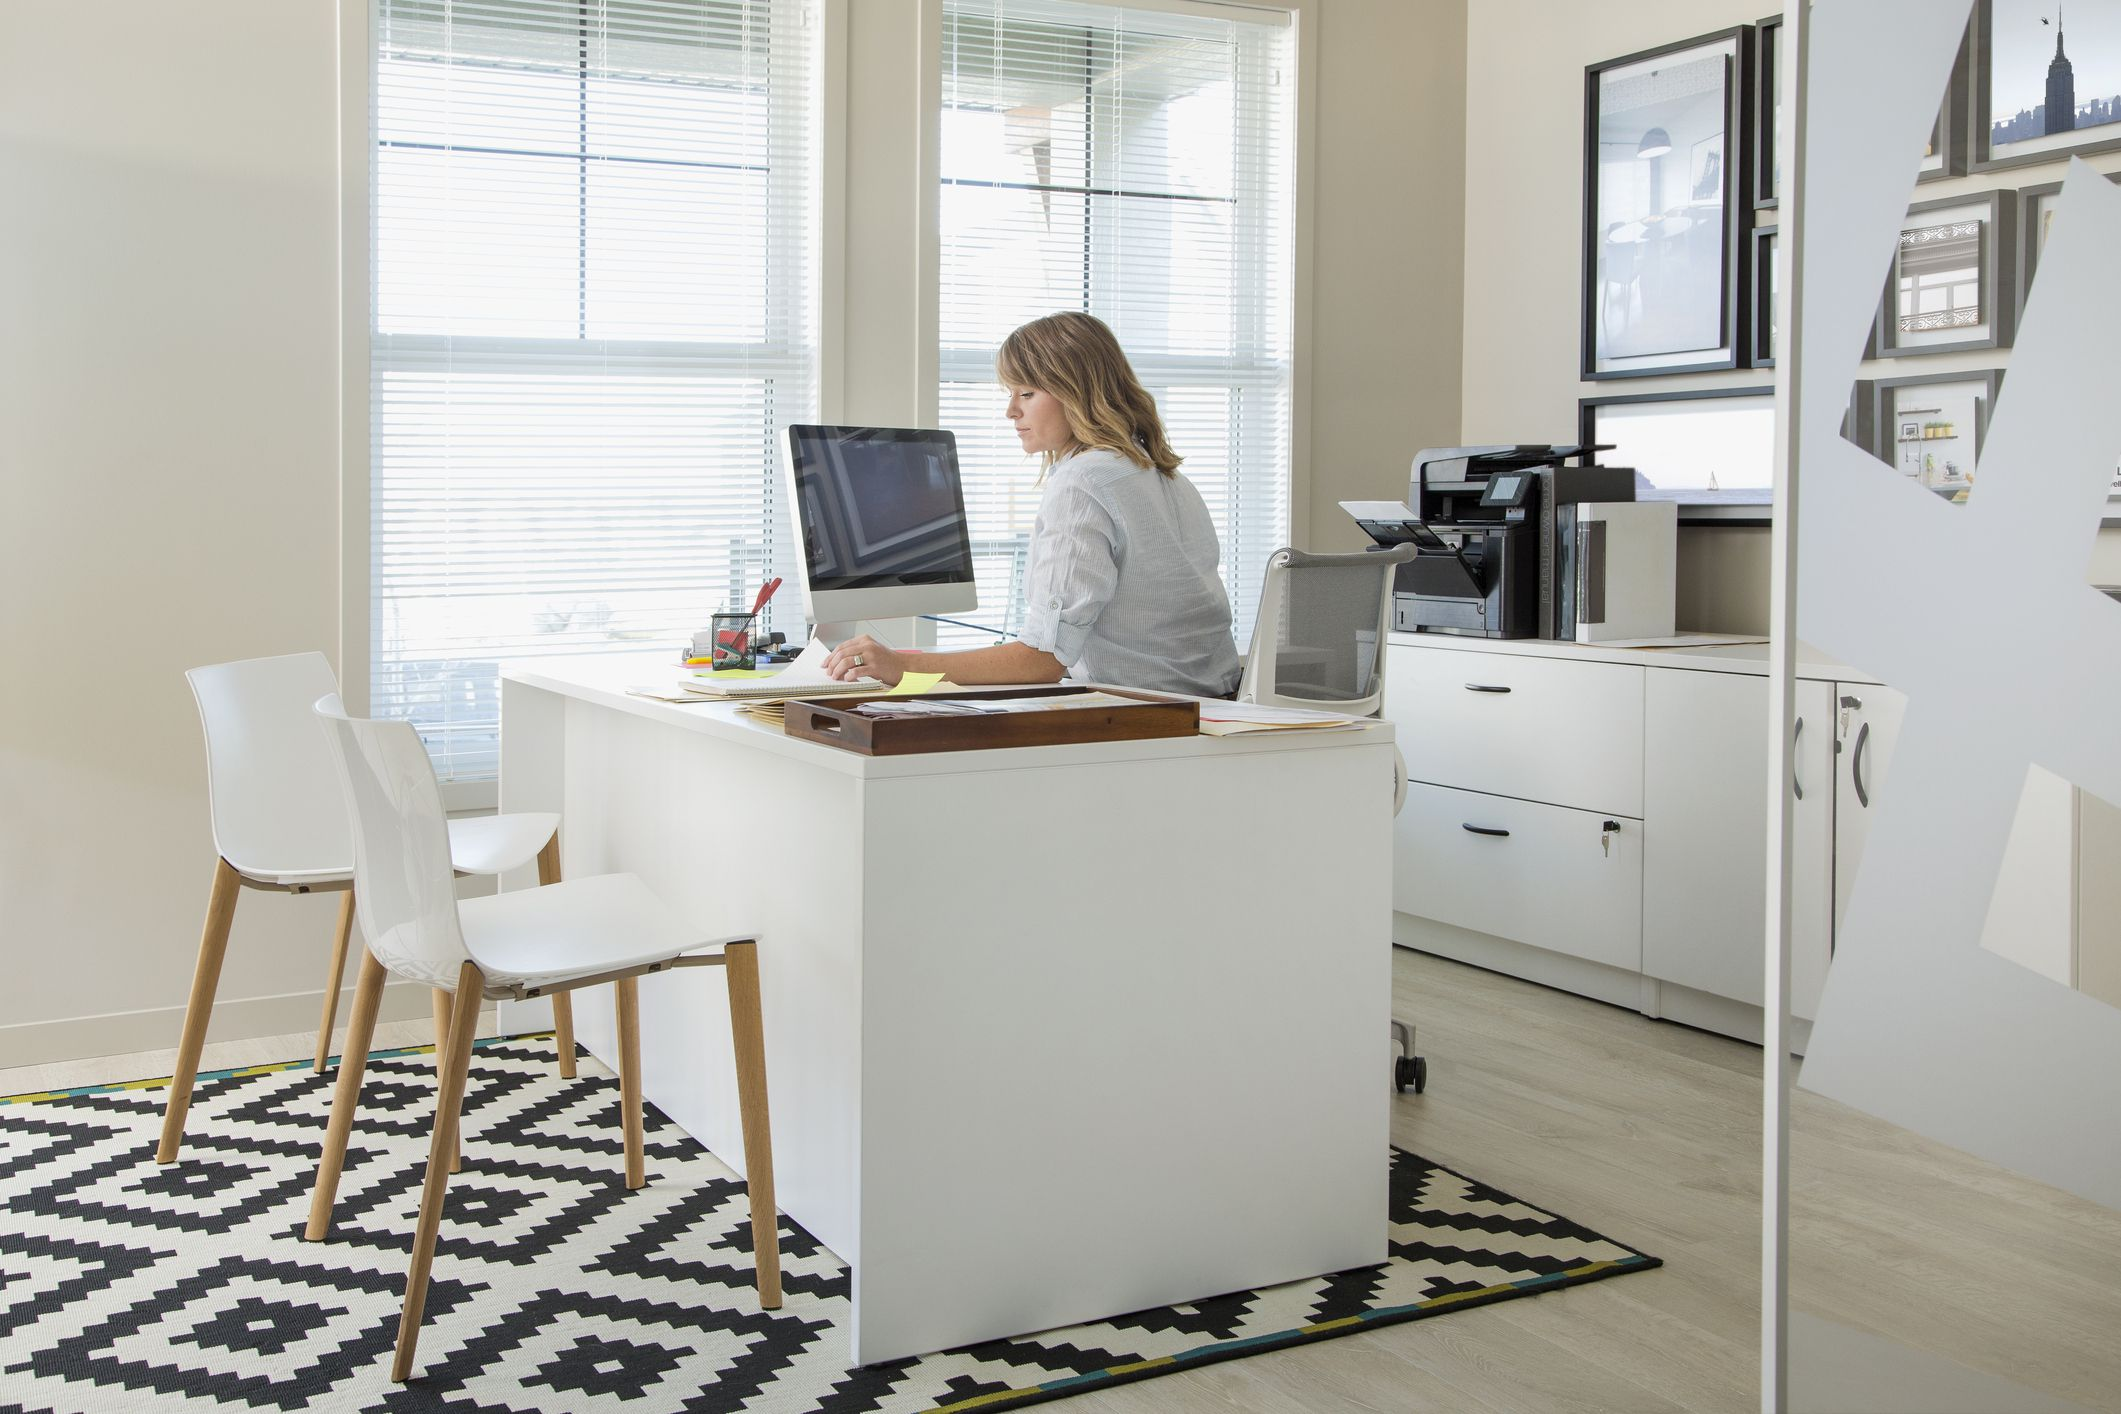 Get Started With One of These 12 Real Work-at-Home Jobs